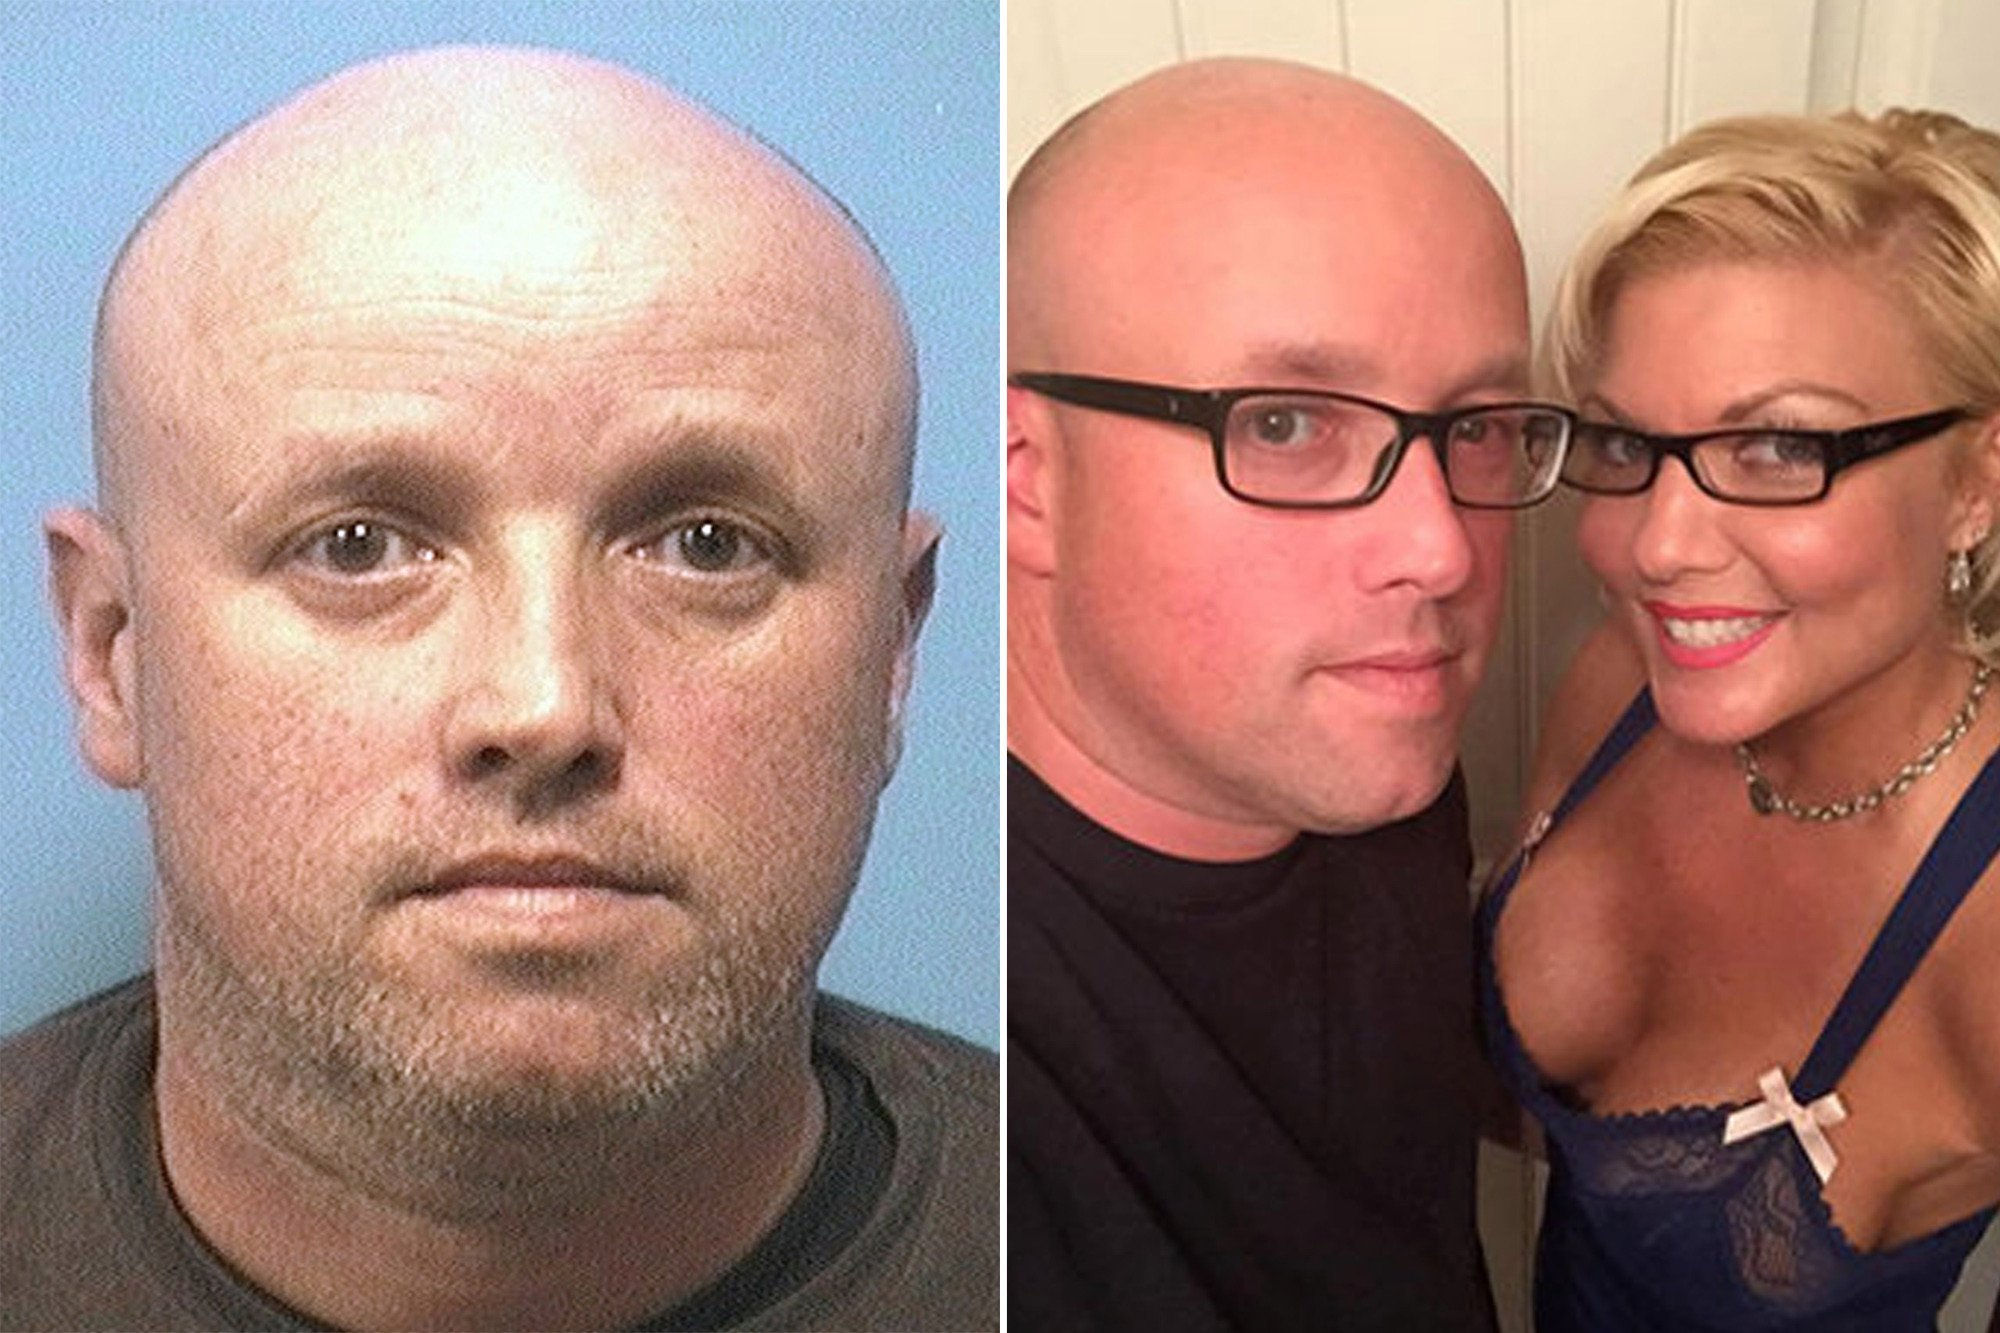 Husband indicted for killing wife who led secret life as porn star